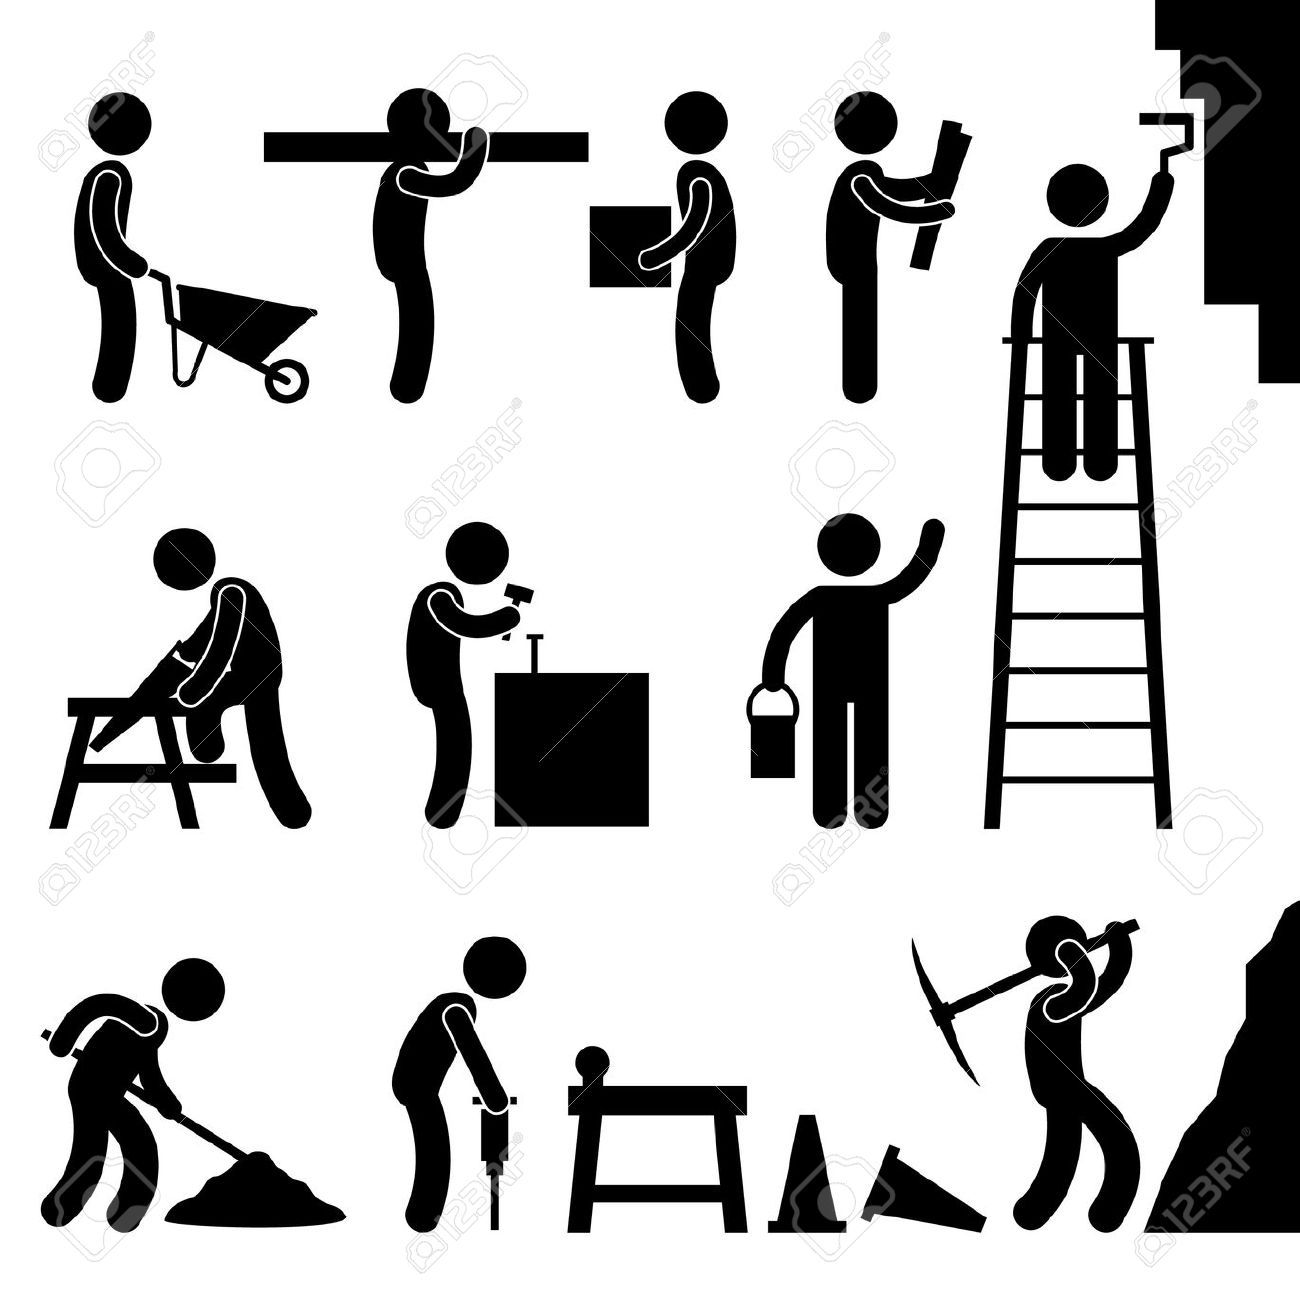 Man People Working Construction Carrying Building Industry Painting Royalty Free Cliparts